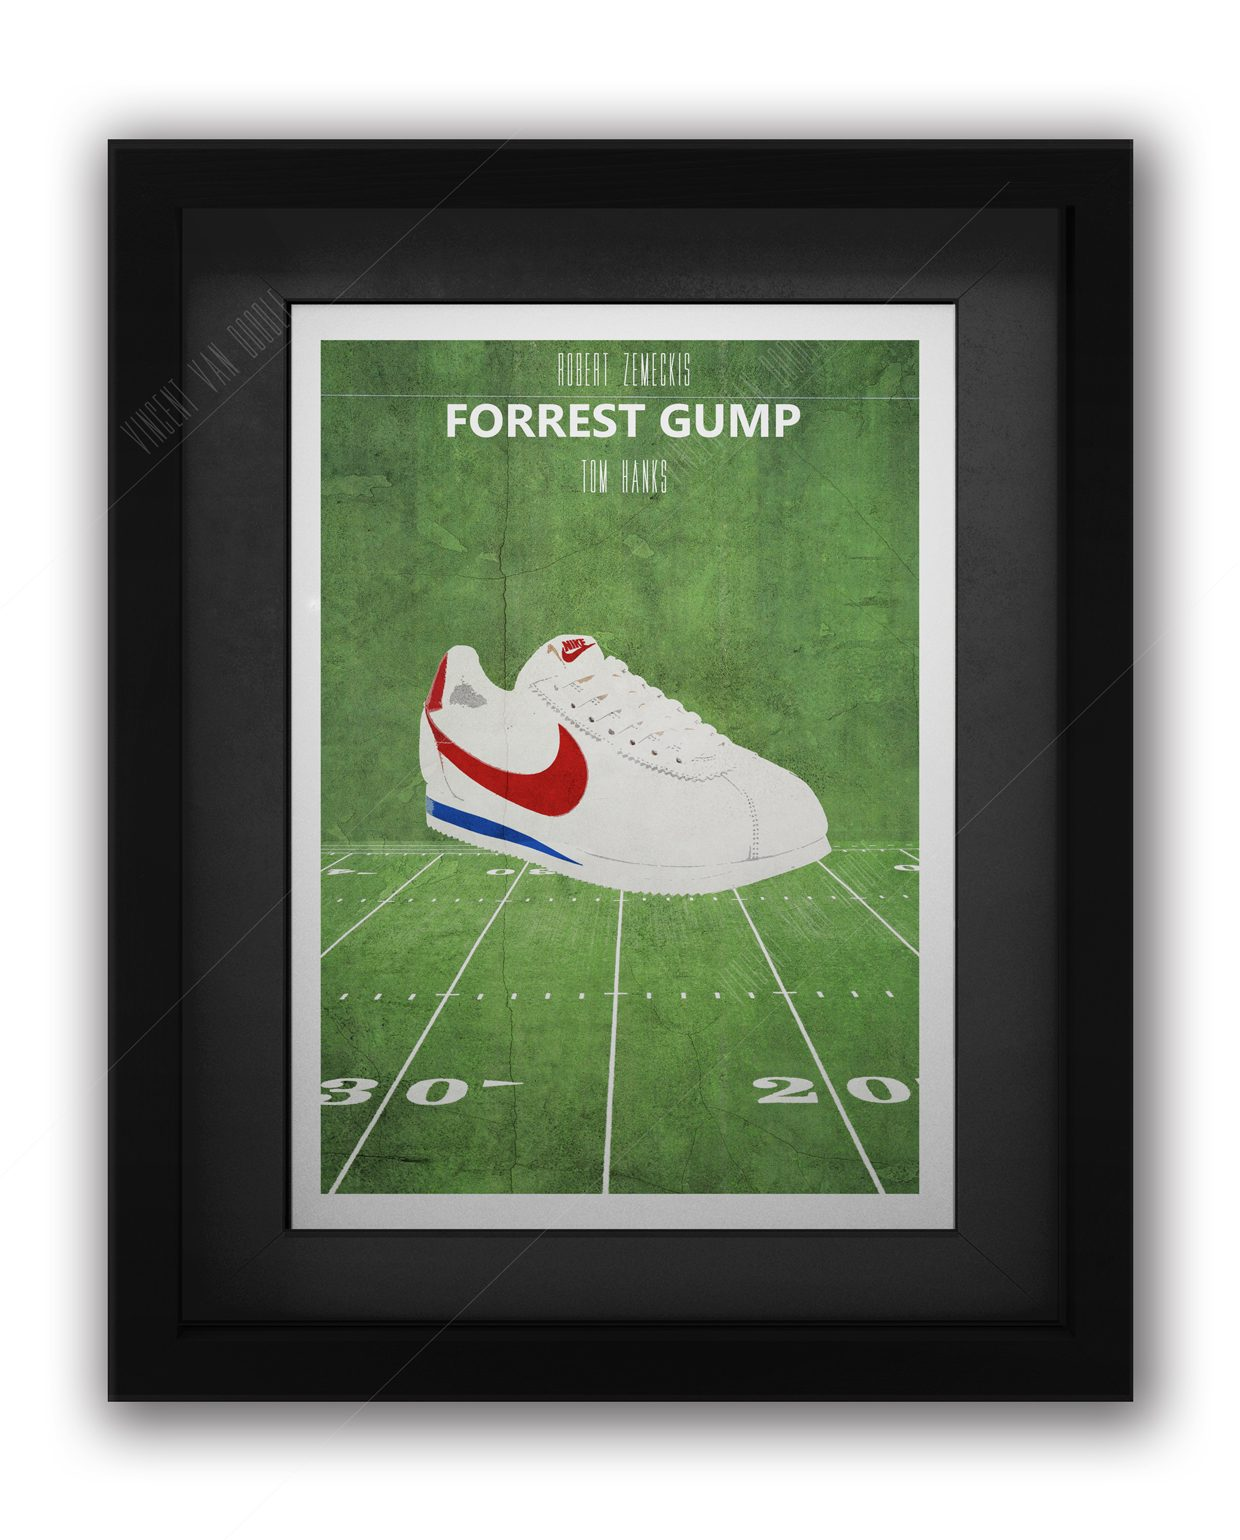 forrest-gump-movie-framed